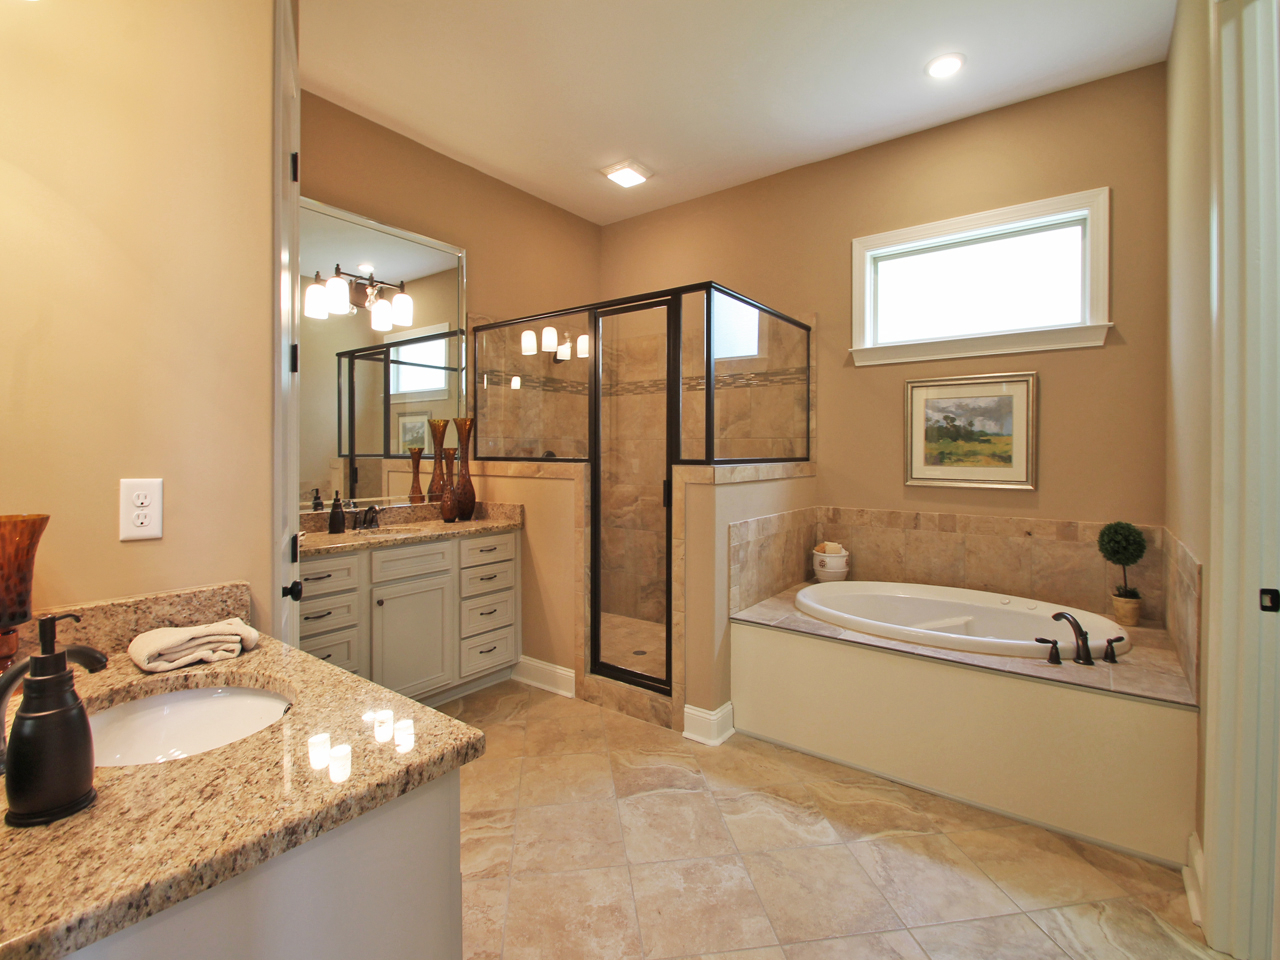 Bath And Kitchen Remodeling Kitchen Remodeling Contractor Bath Remodel Premier Kitchen And